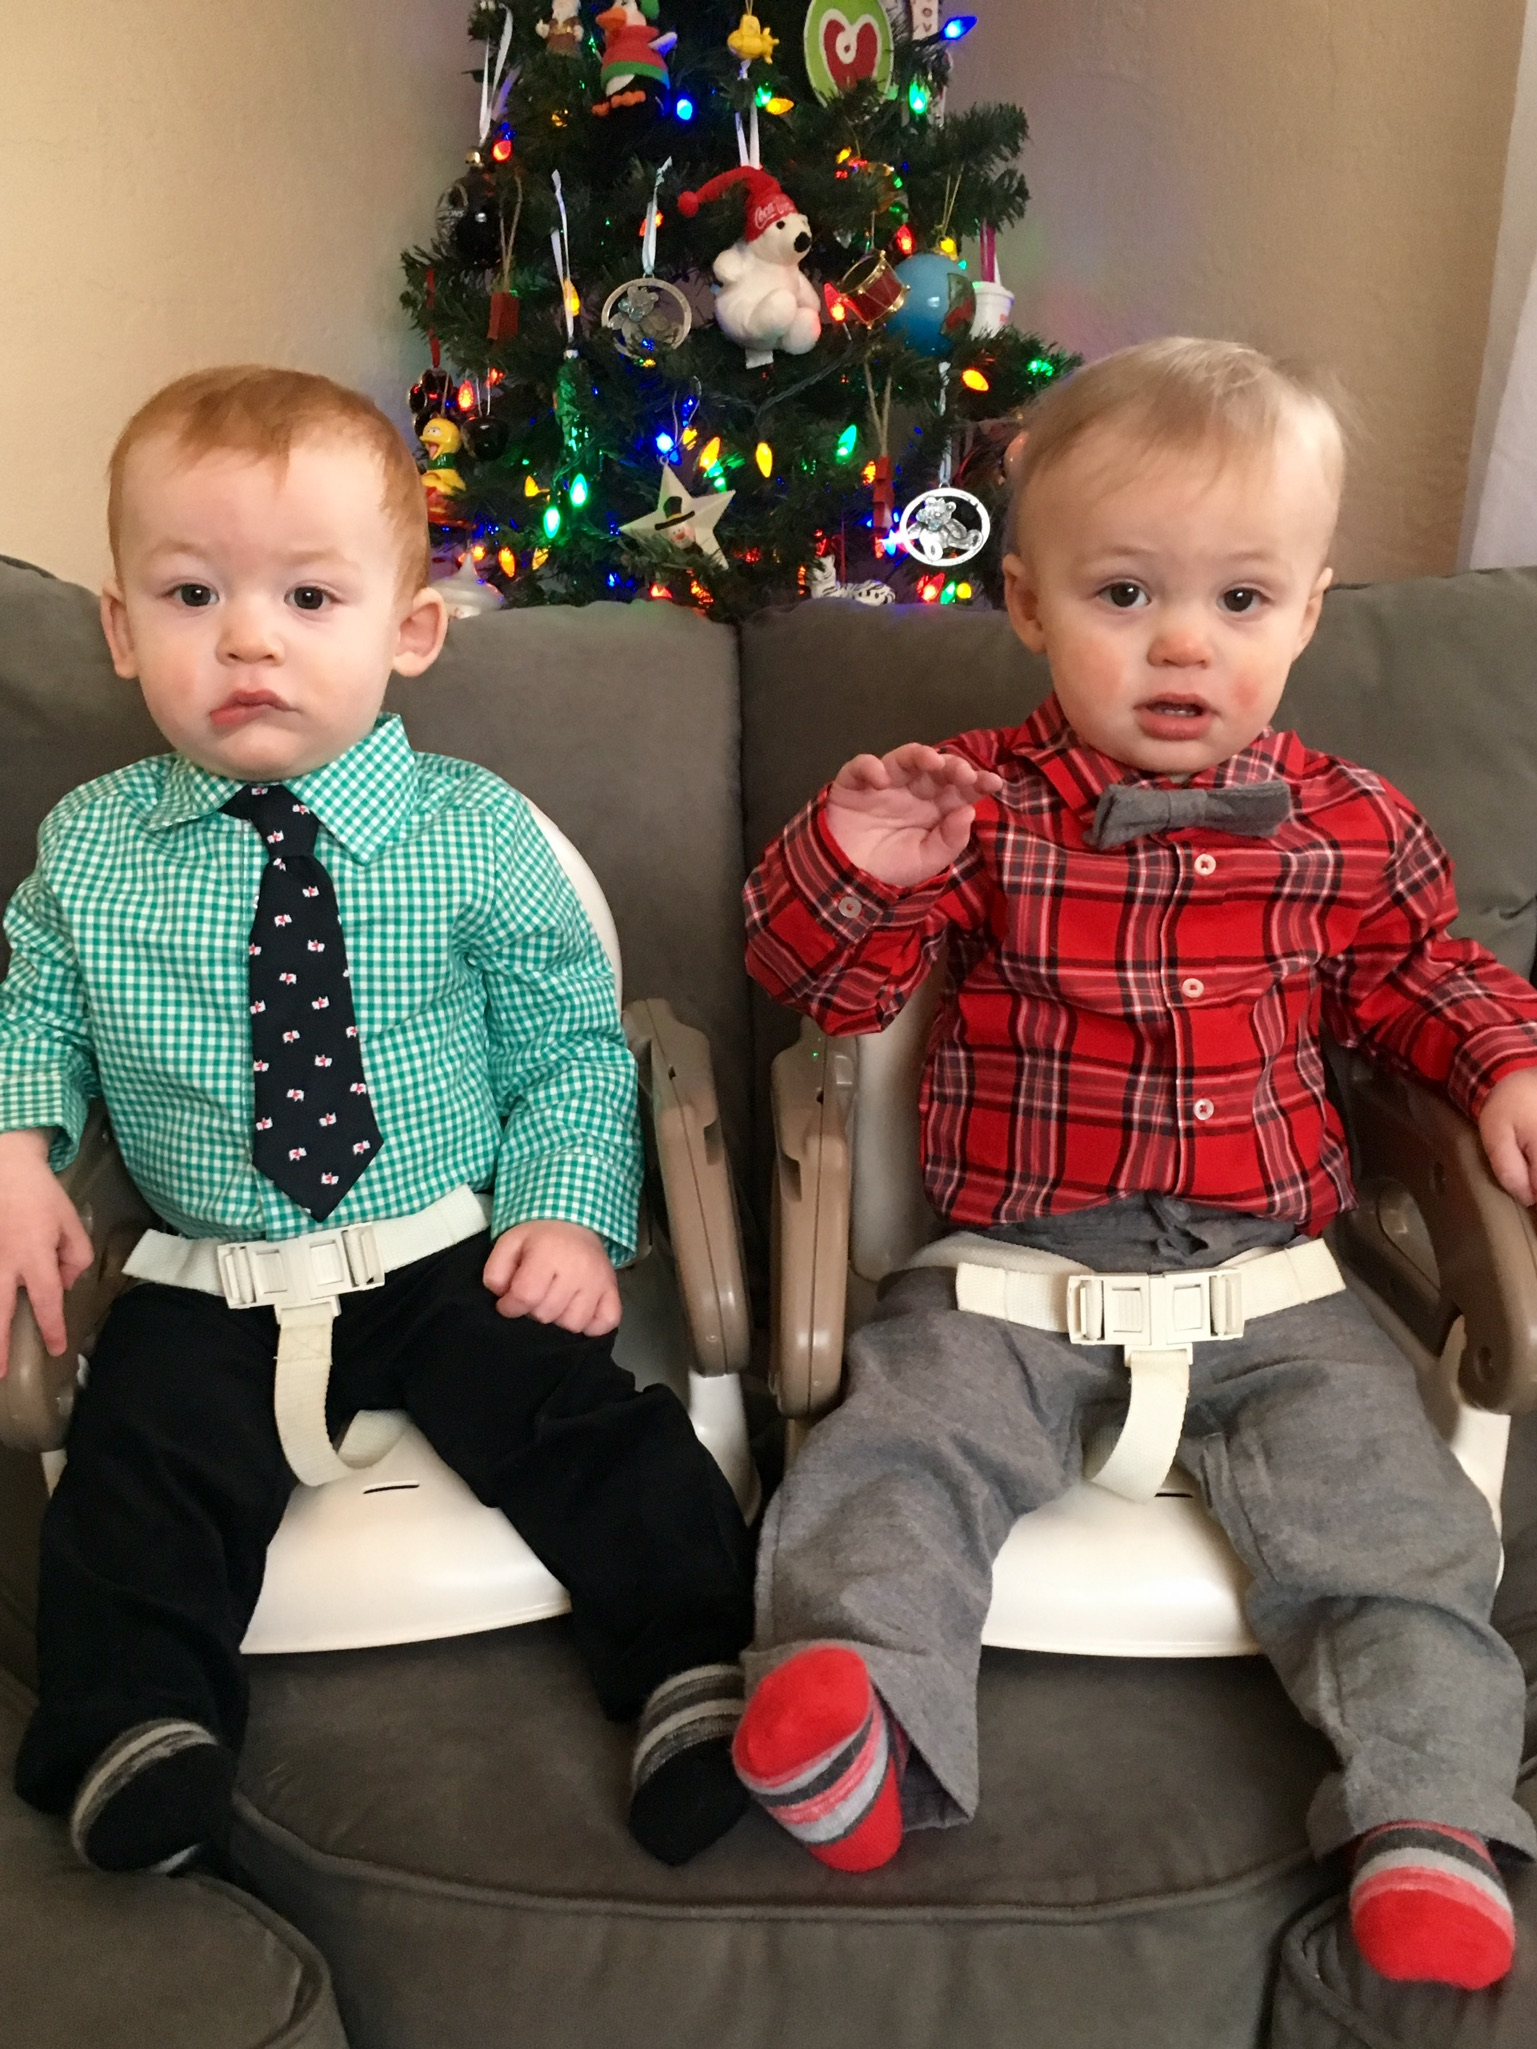 Joshua and Julian would not smile for a posed Christmas photo.